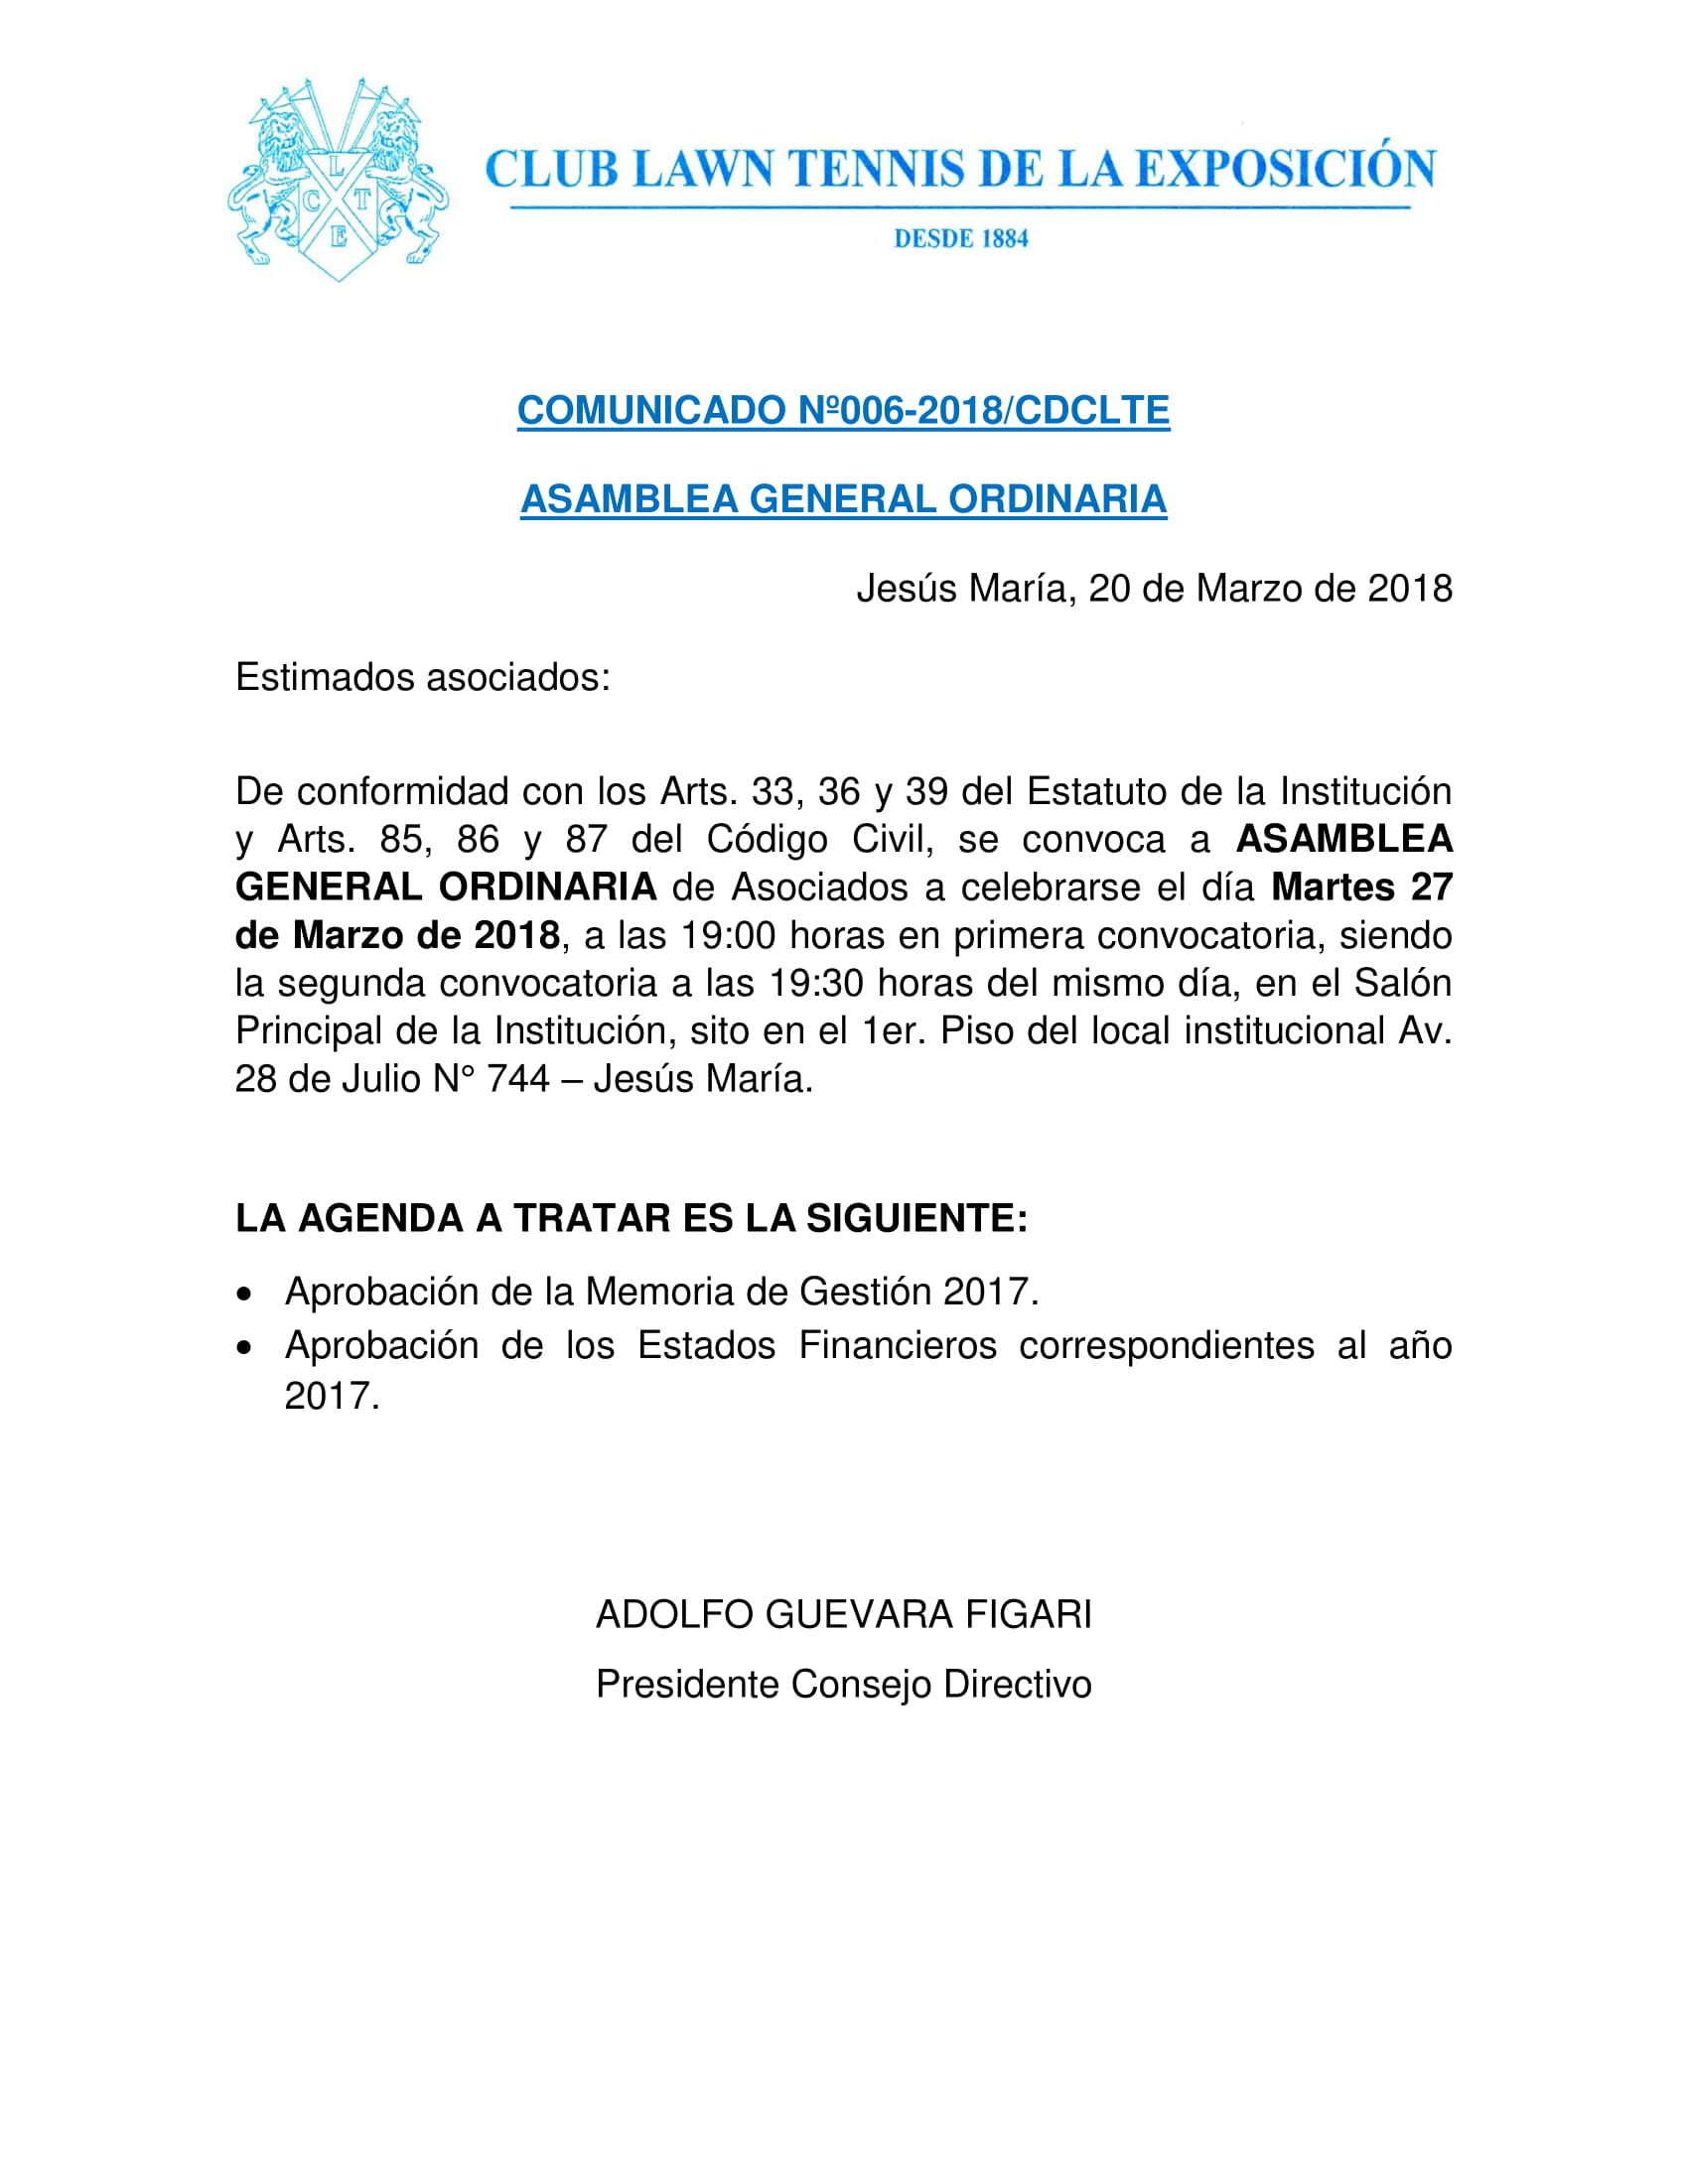 Comunicado 006 - Asamblea General Ordinaria